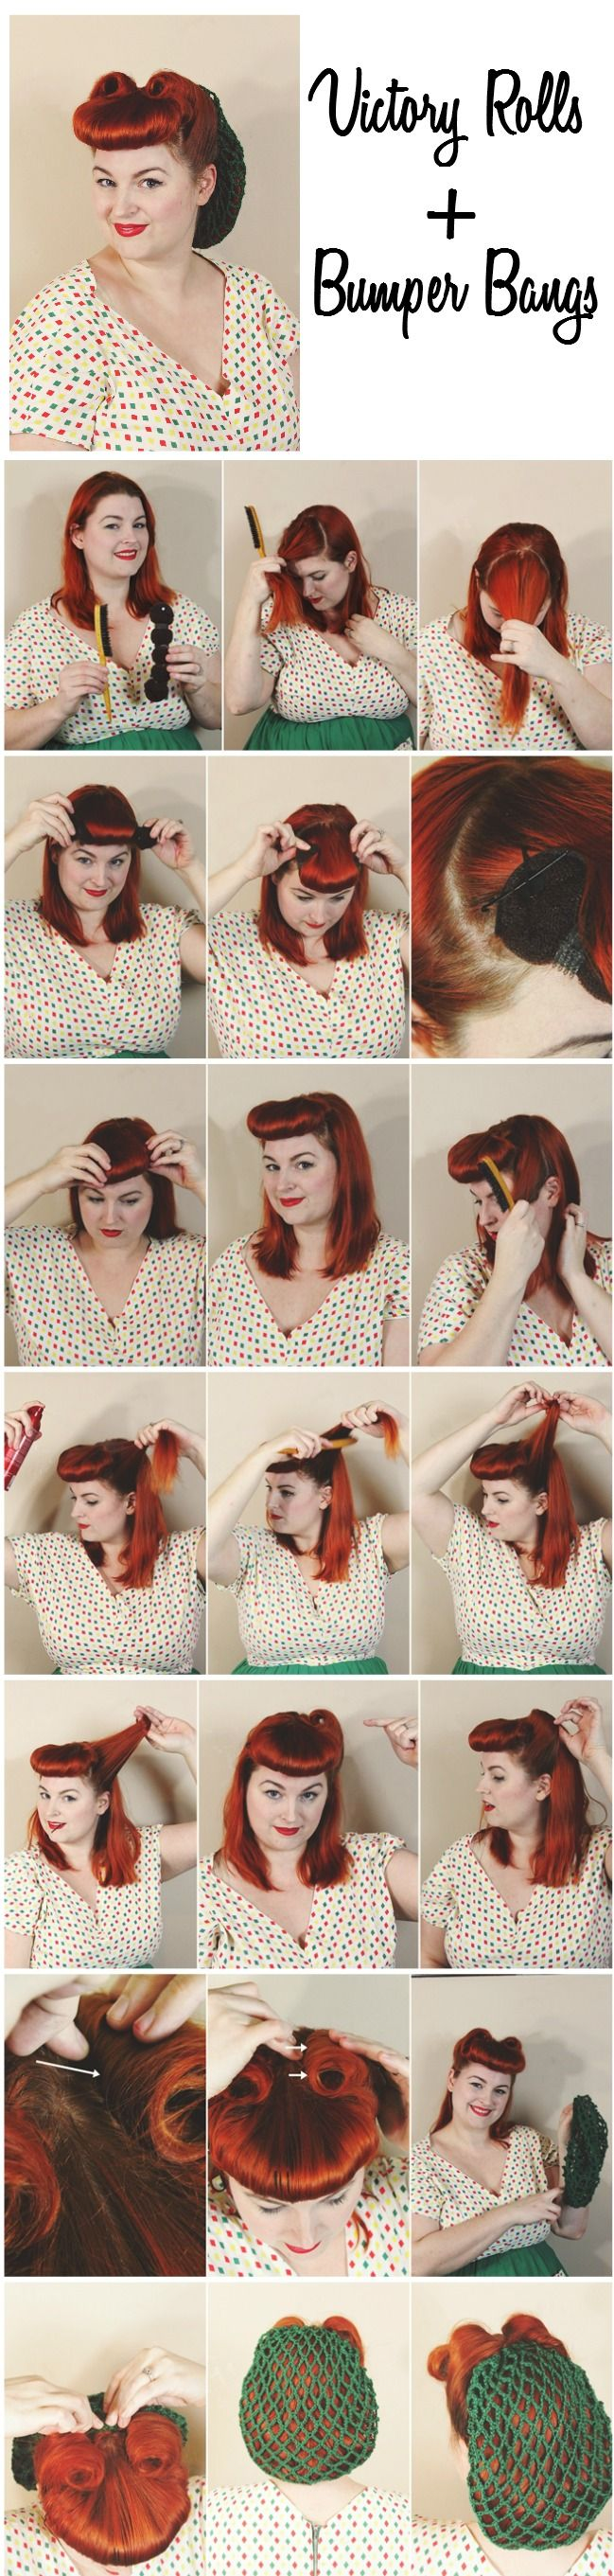 how to style retro pin up hair- victory rolls and faux bumper bangs with a 1940s hair snood net via va-voom vintage- Love this lady and her blog!!